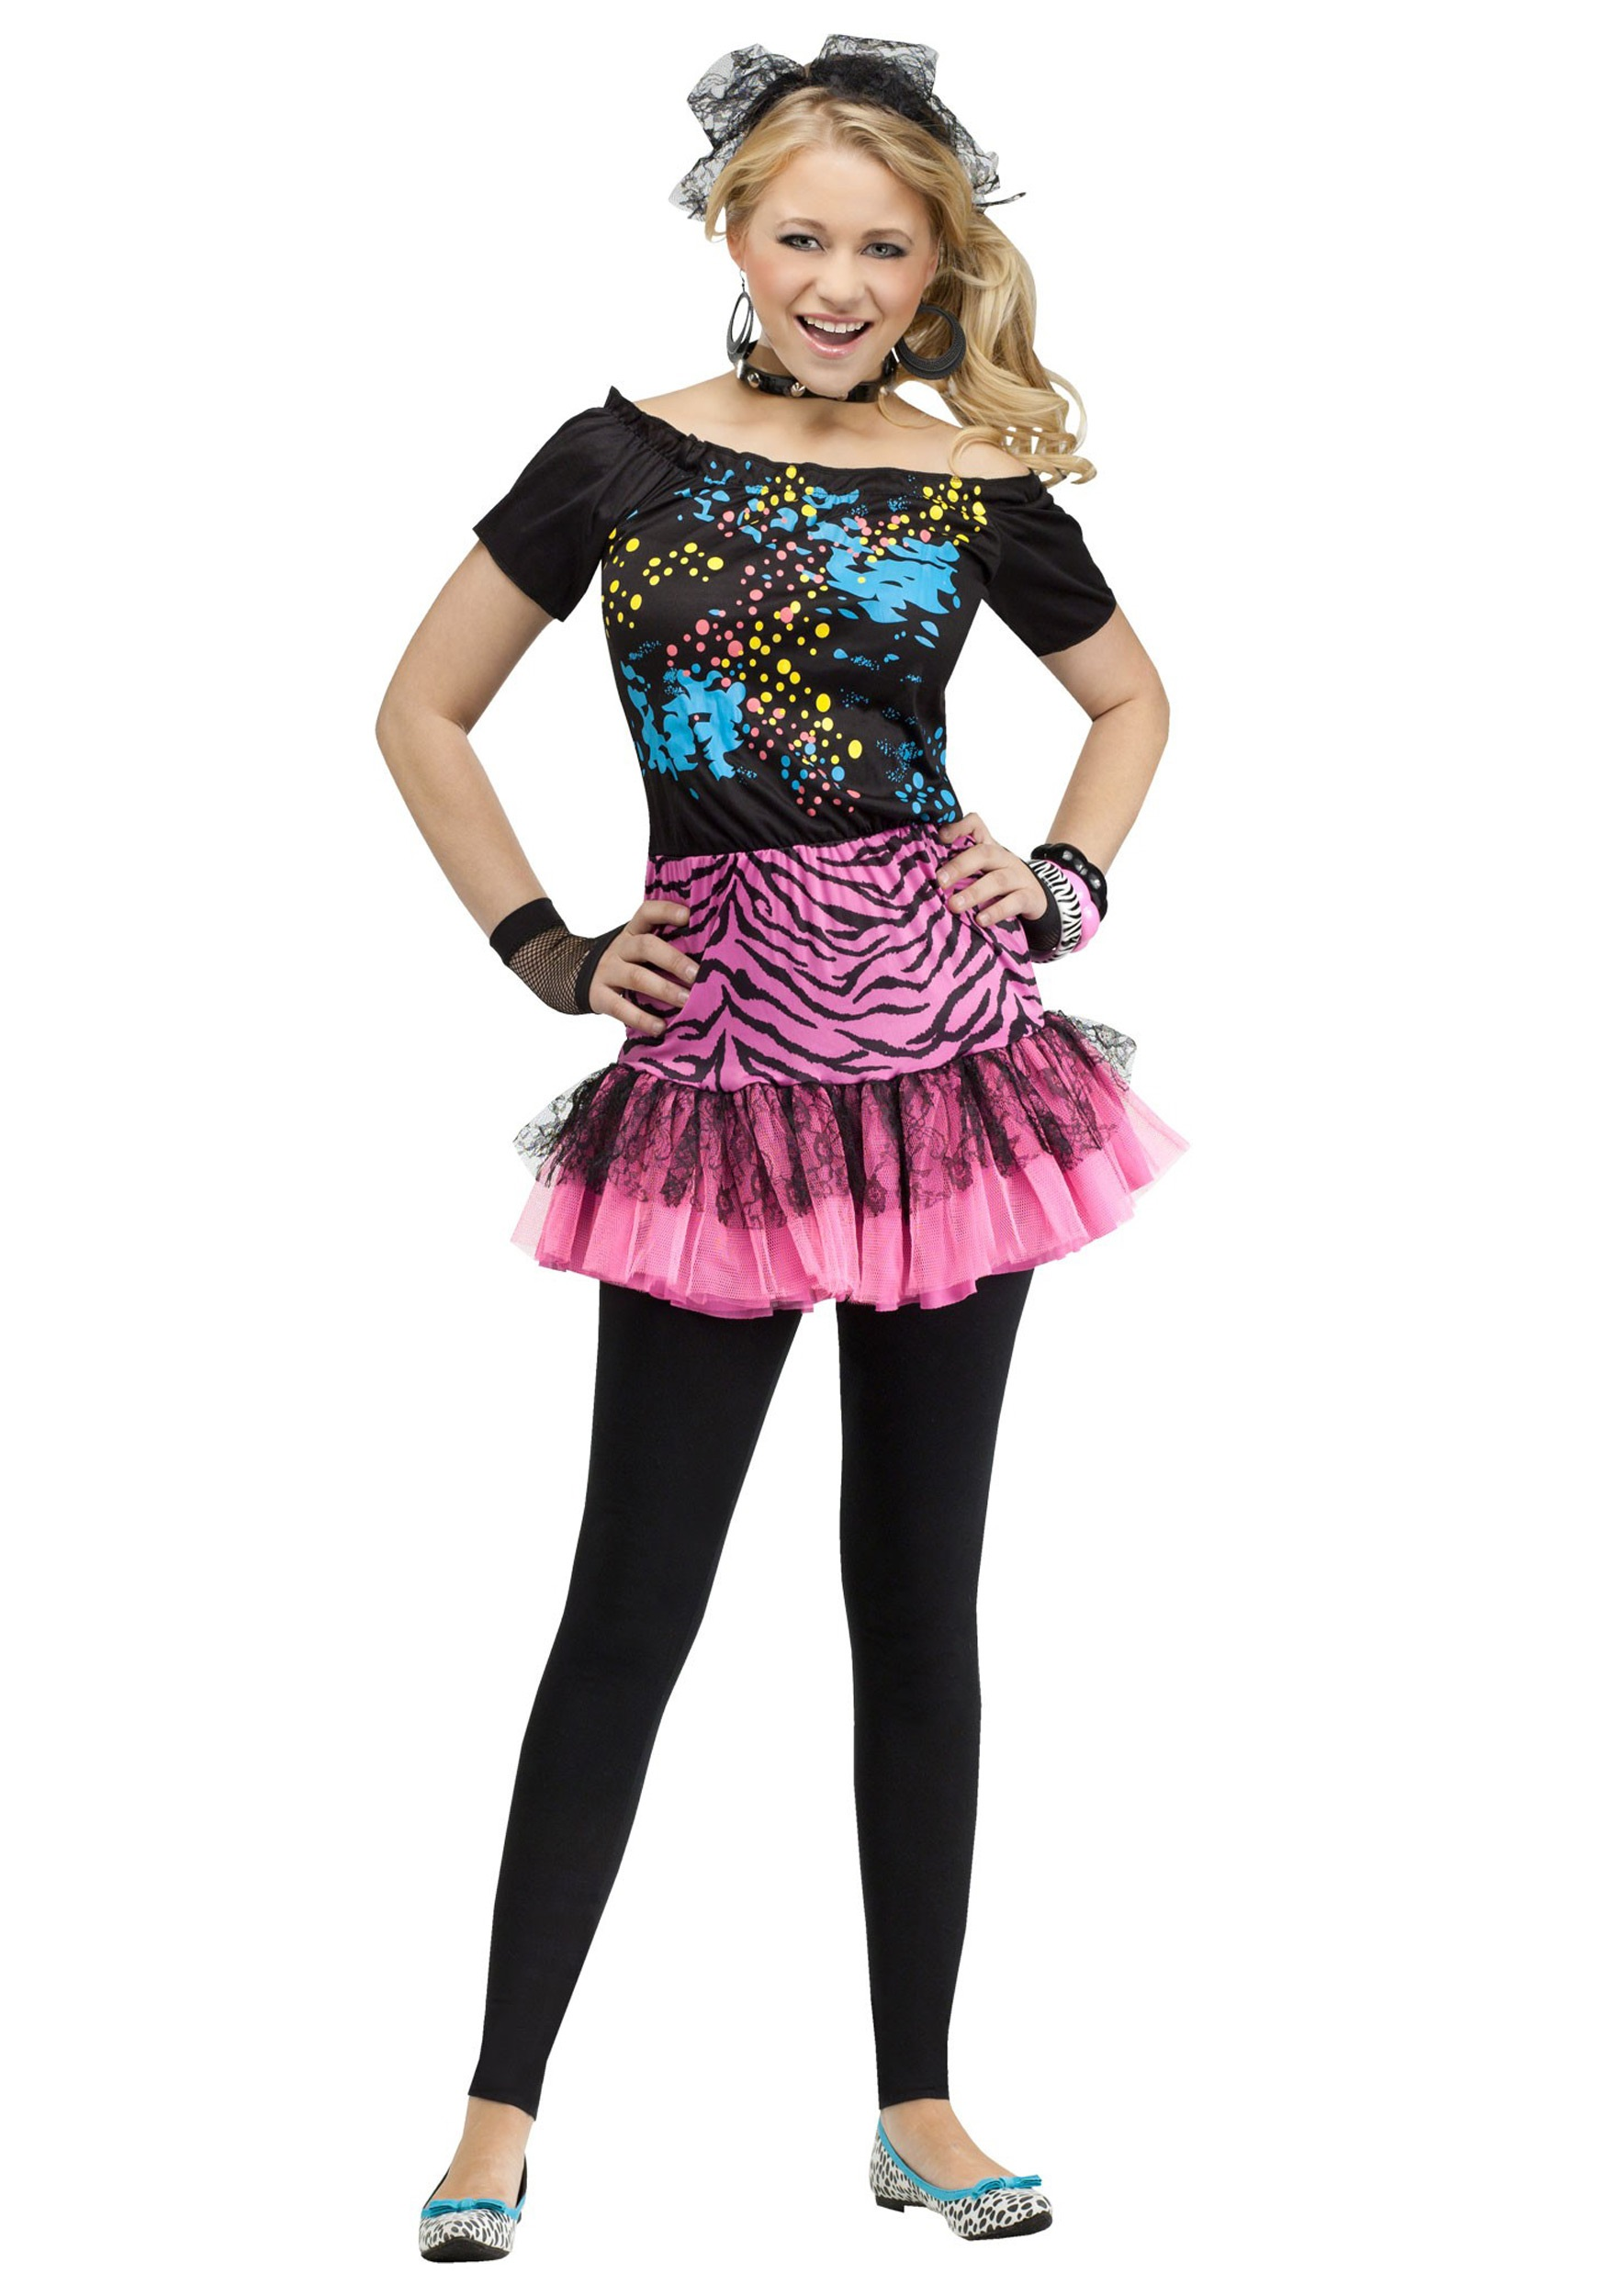 Teen 80s Pop Party Costume Halloween Costume Ideas 2018